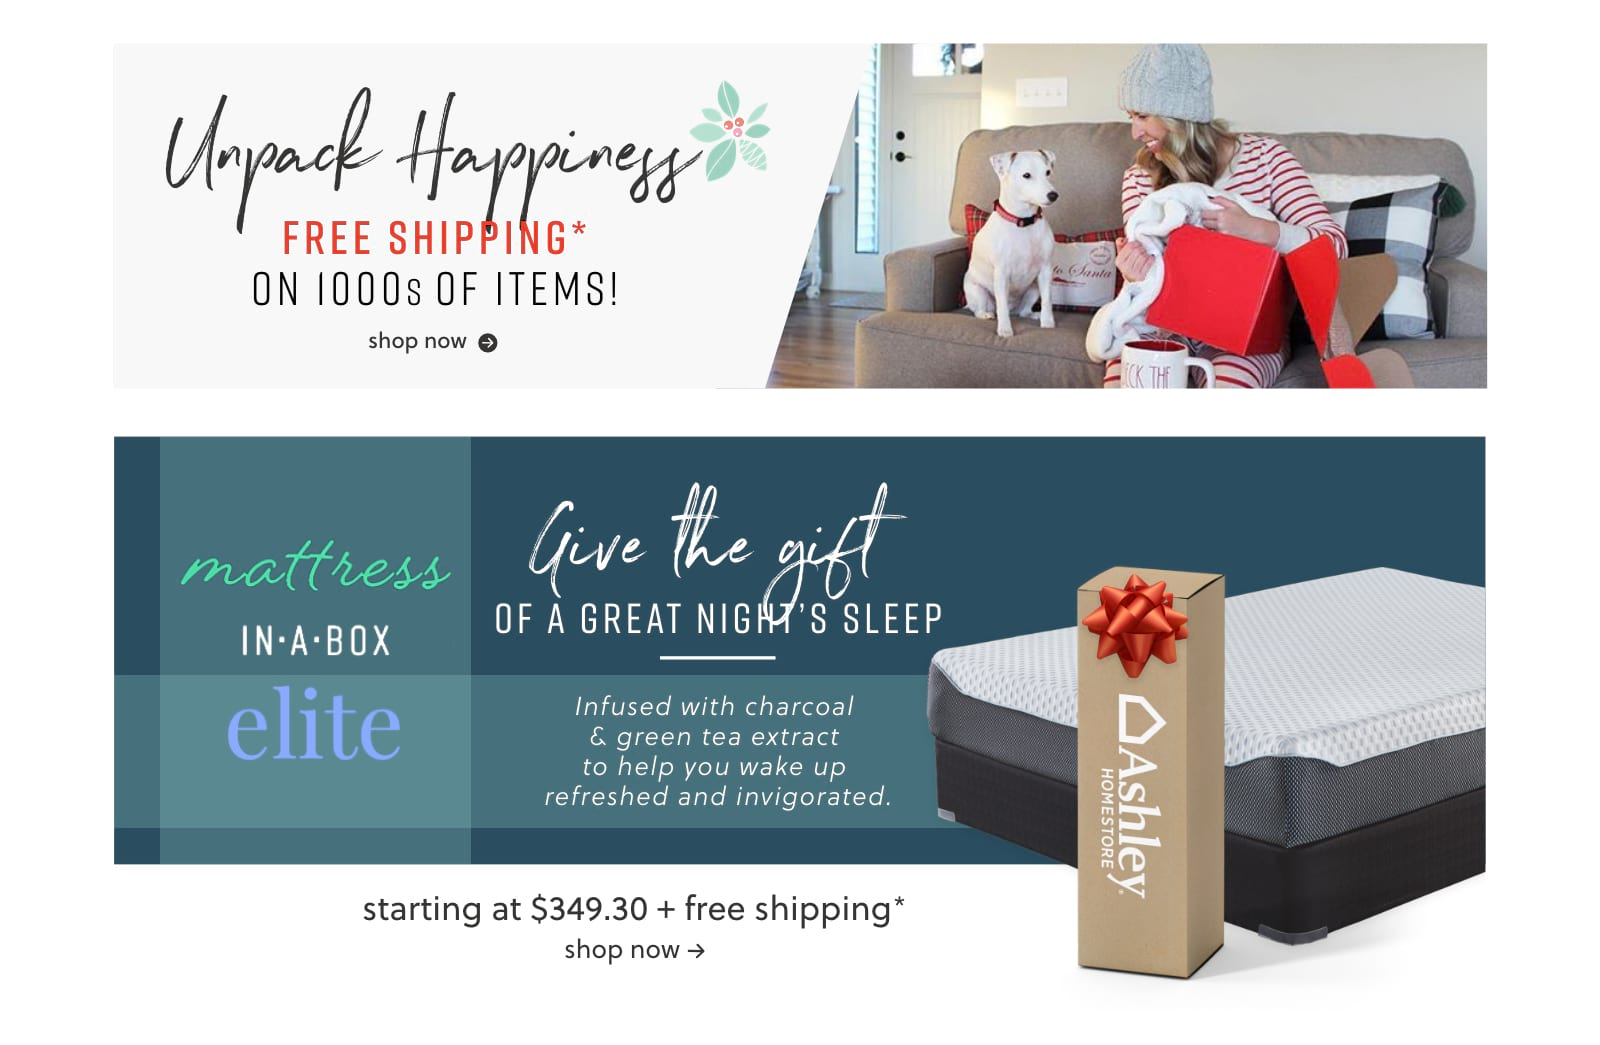 Free Shipping Deals on Furniture, Mattress in a Box